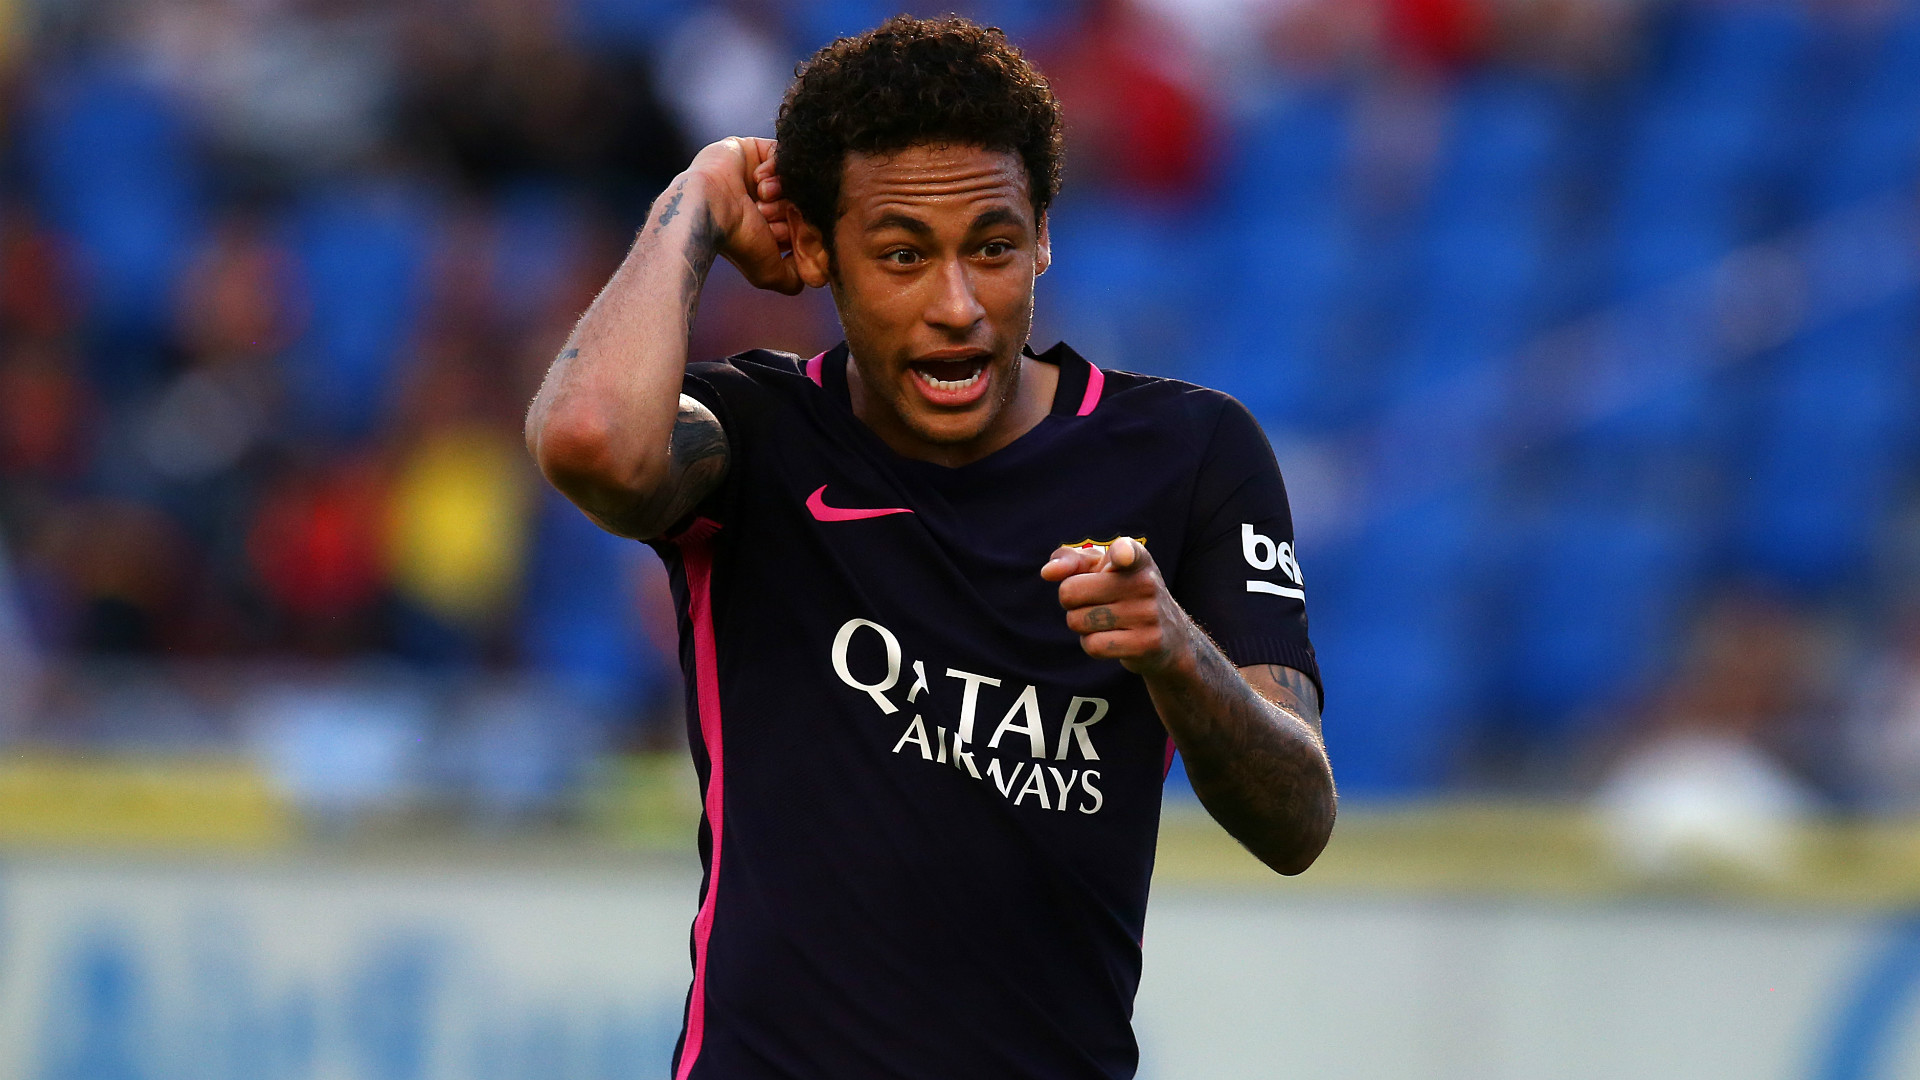 Neymar involved in training bust-up with Barca team-mate